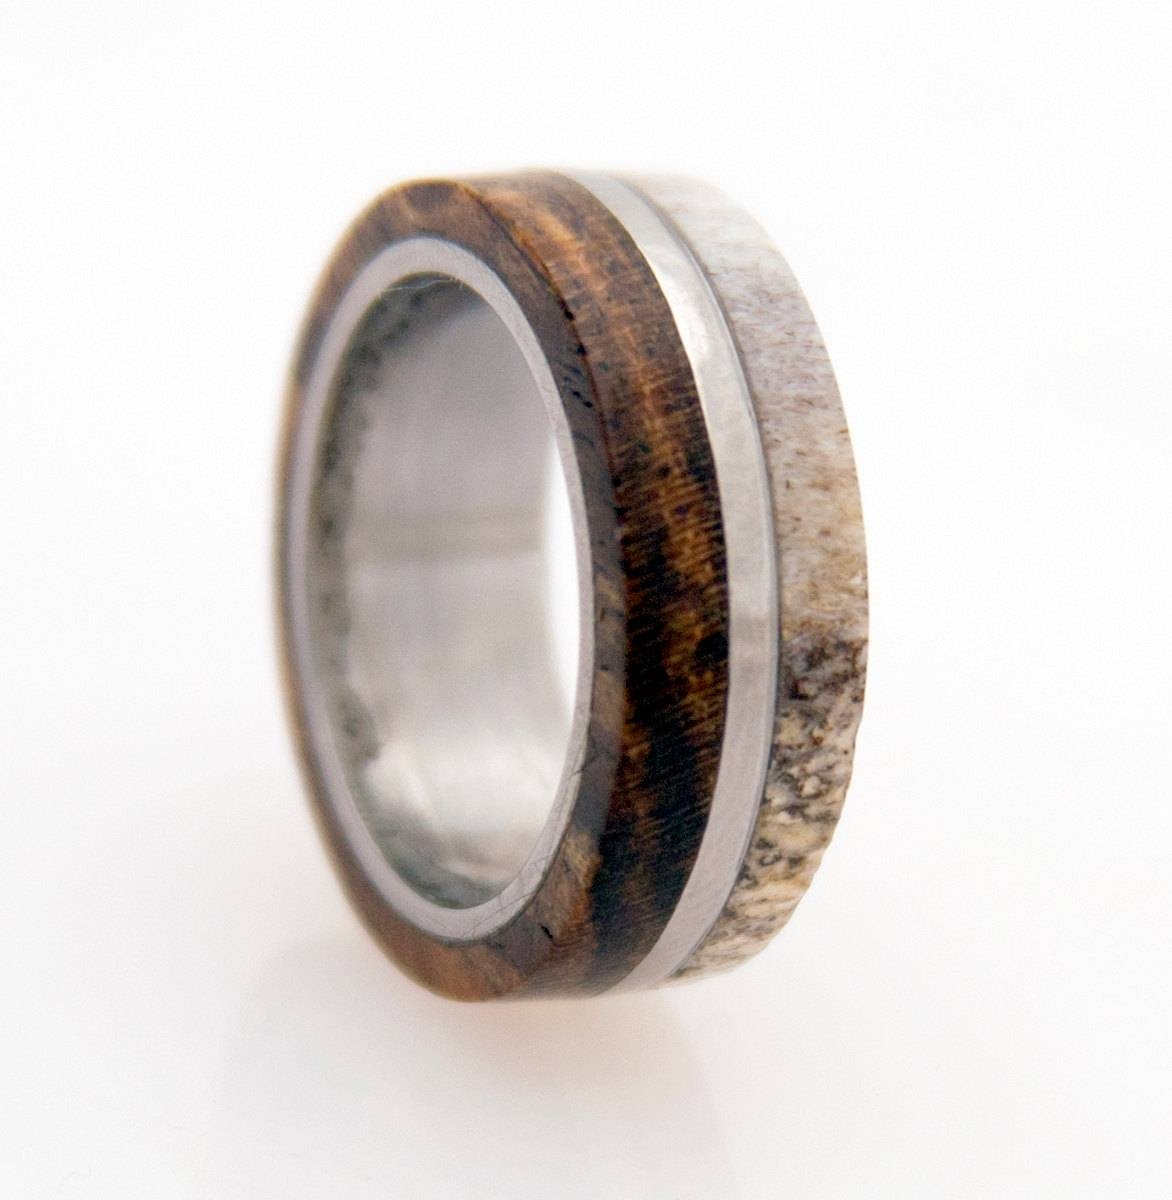 Antler Ring Titanium Ring With Wood Bocote Deer Antler Band In Horn Inlay Titanium Wedding Bands (Gallery 2 of 15)